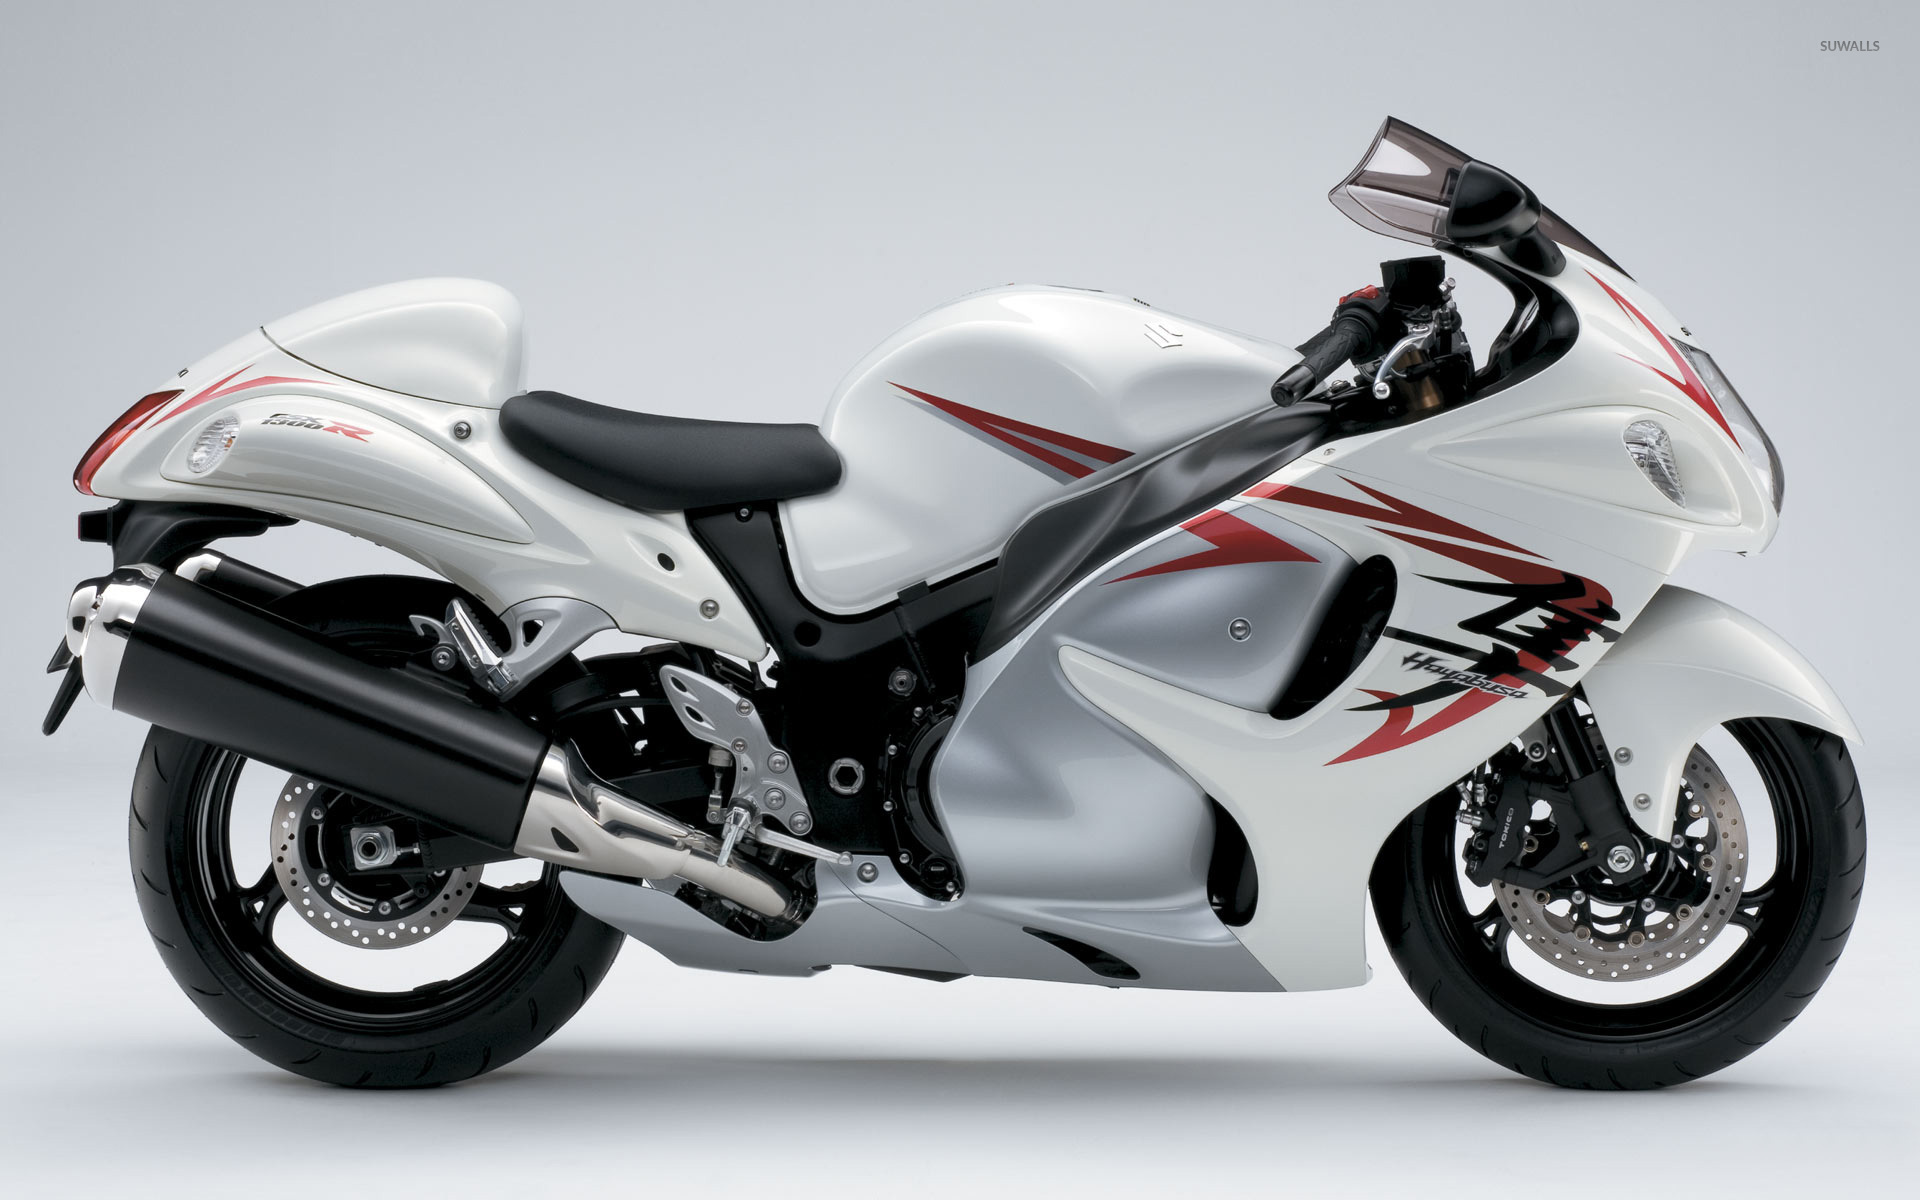 Suzuki Hayabusa GSX1300R wallpaper - Motorcycle wallpapers - #3273